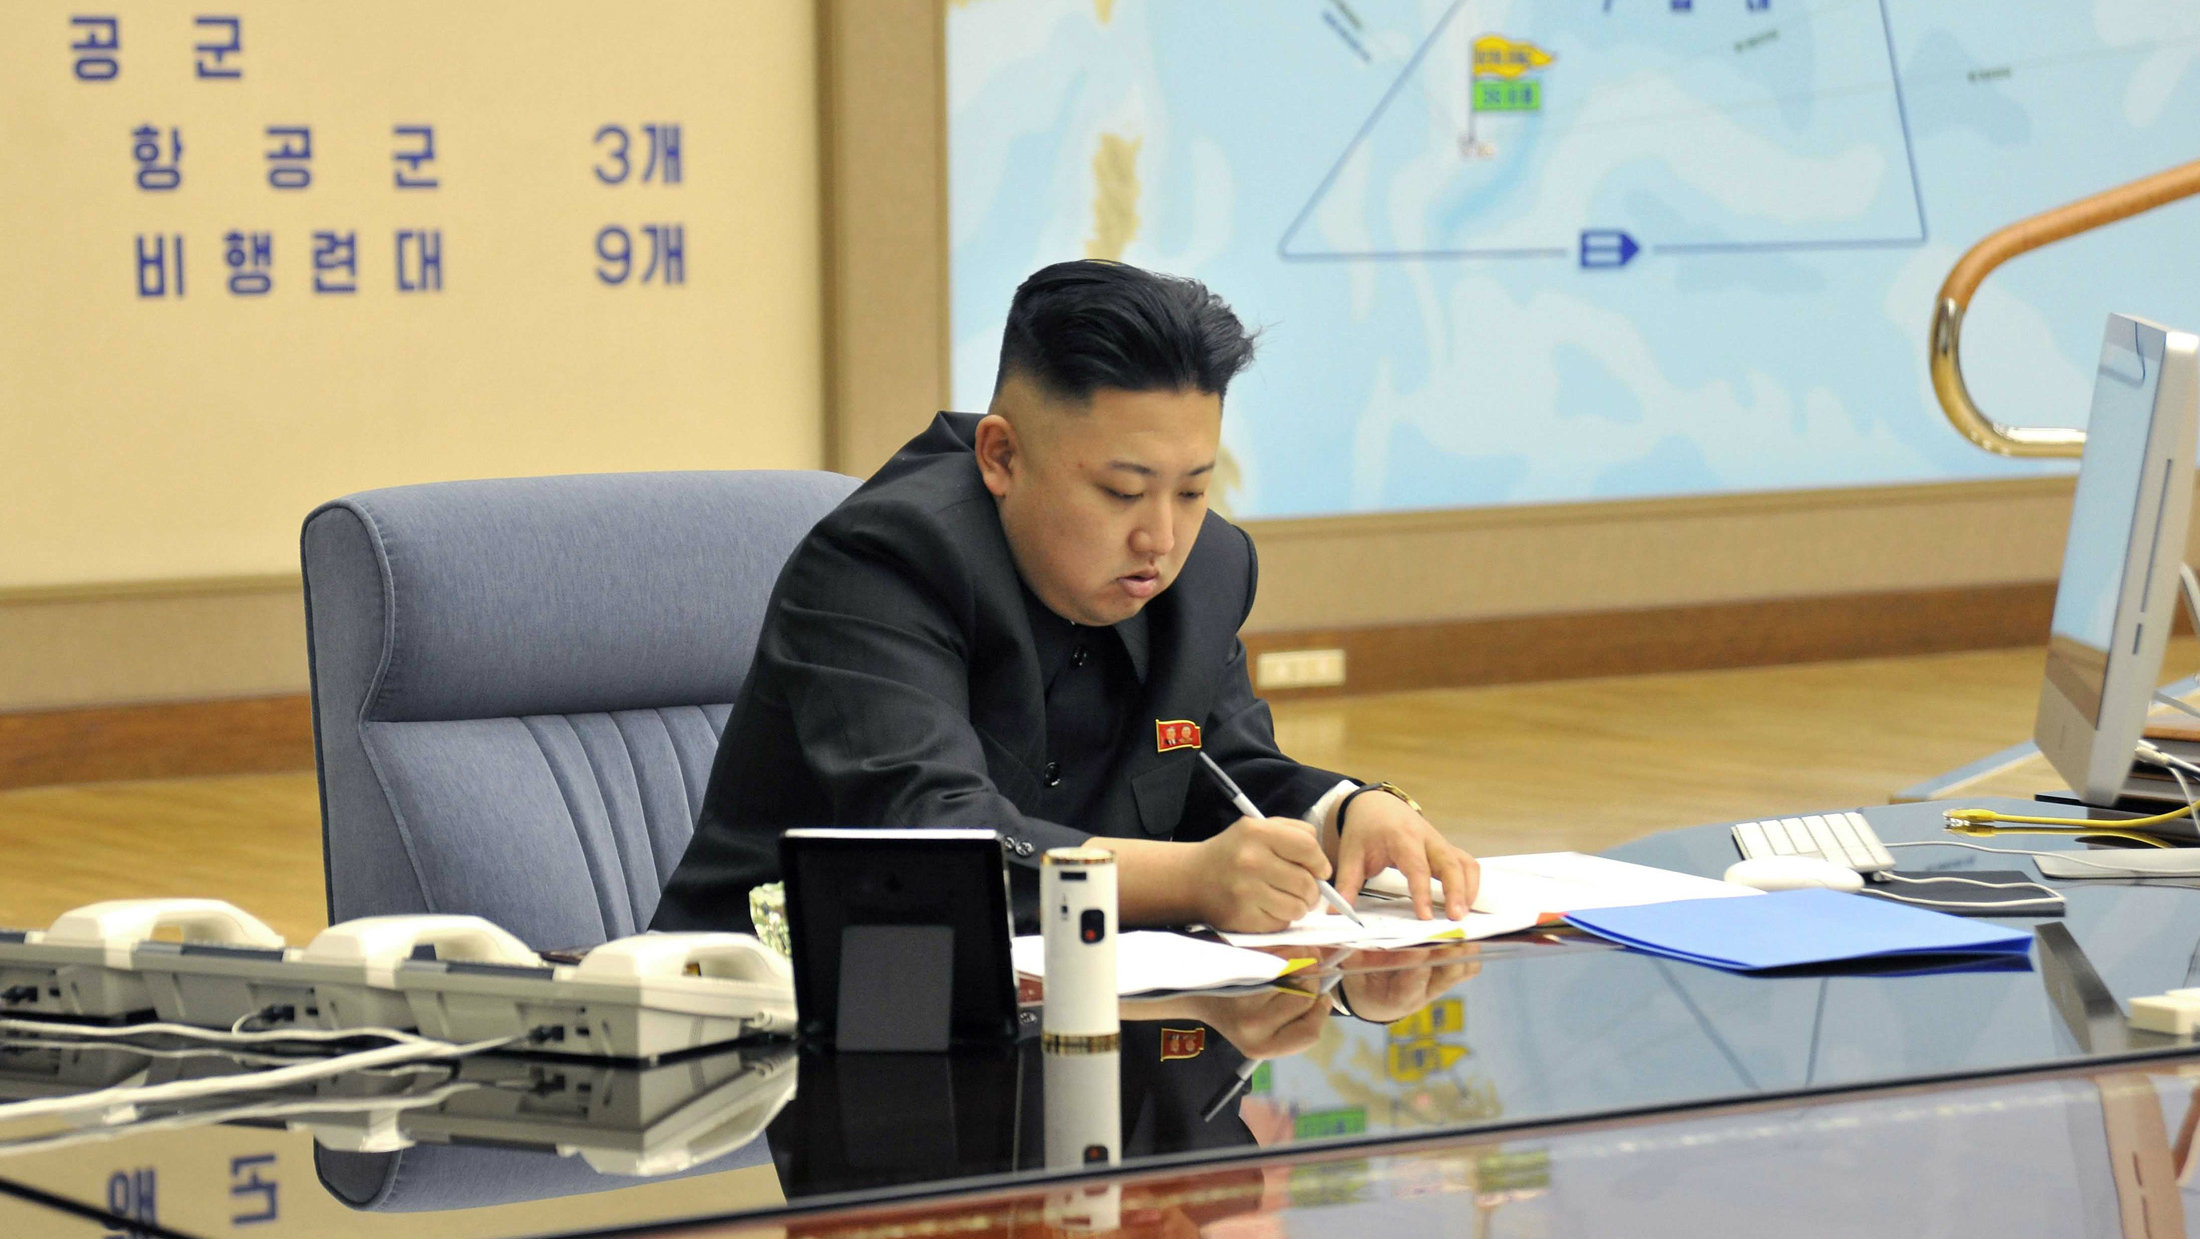 North Korean leader Kim Jong-un presides over an urgent operation meeting on the Korean People's Army Strategic Rocket Force's performance of duty for firepower strike at the Supreme Command in Pyongyang, early March 29, 2013, in this picture released by the North's official KCNA news agency on Friday.